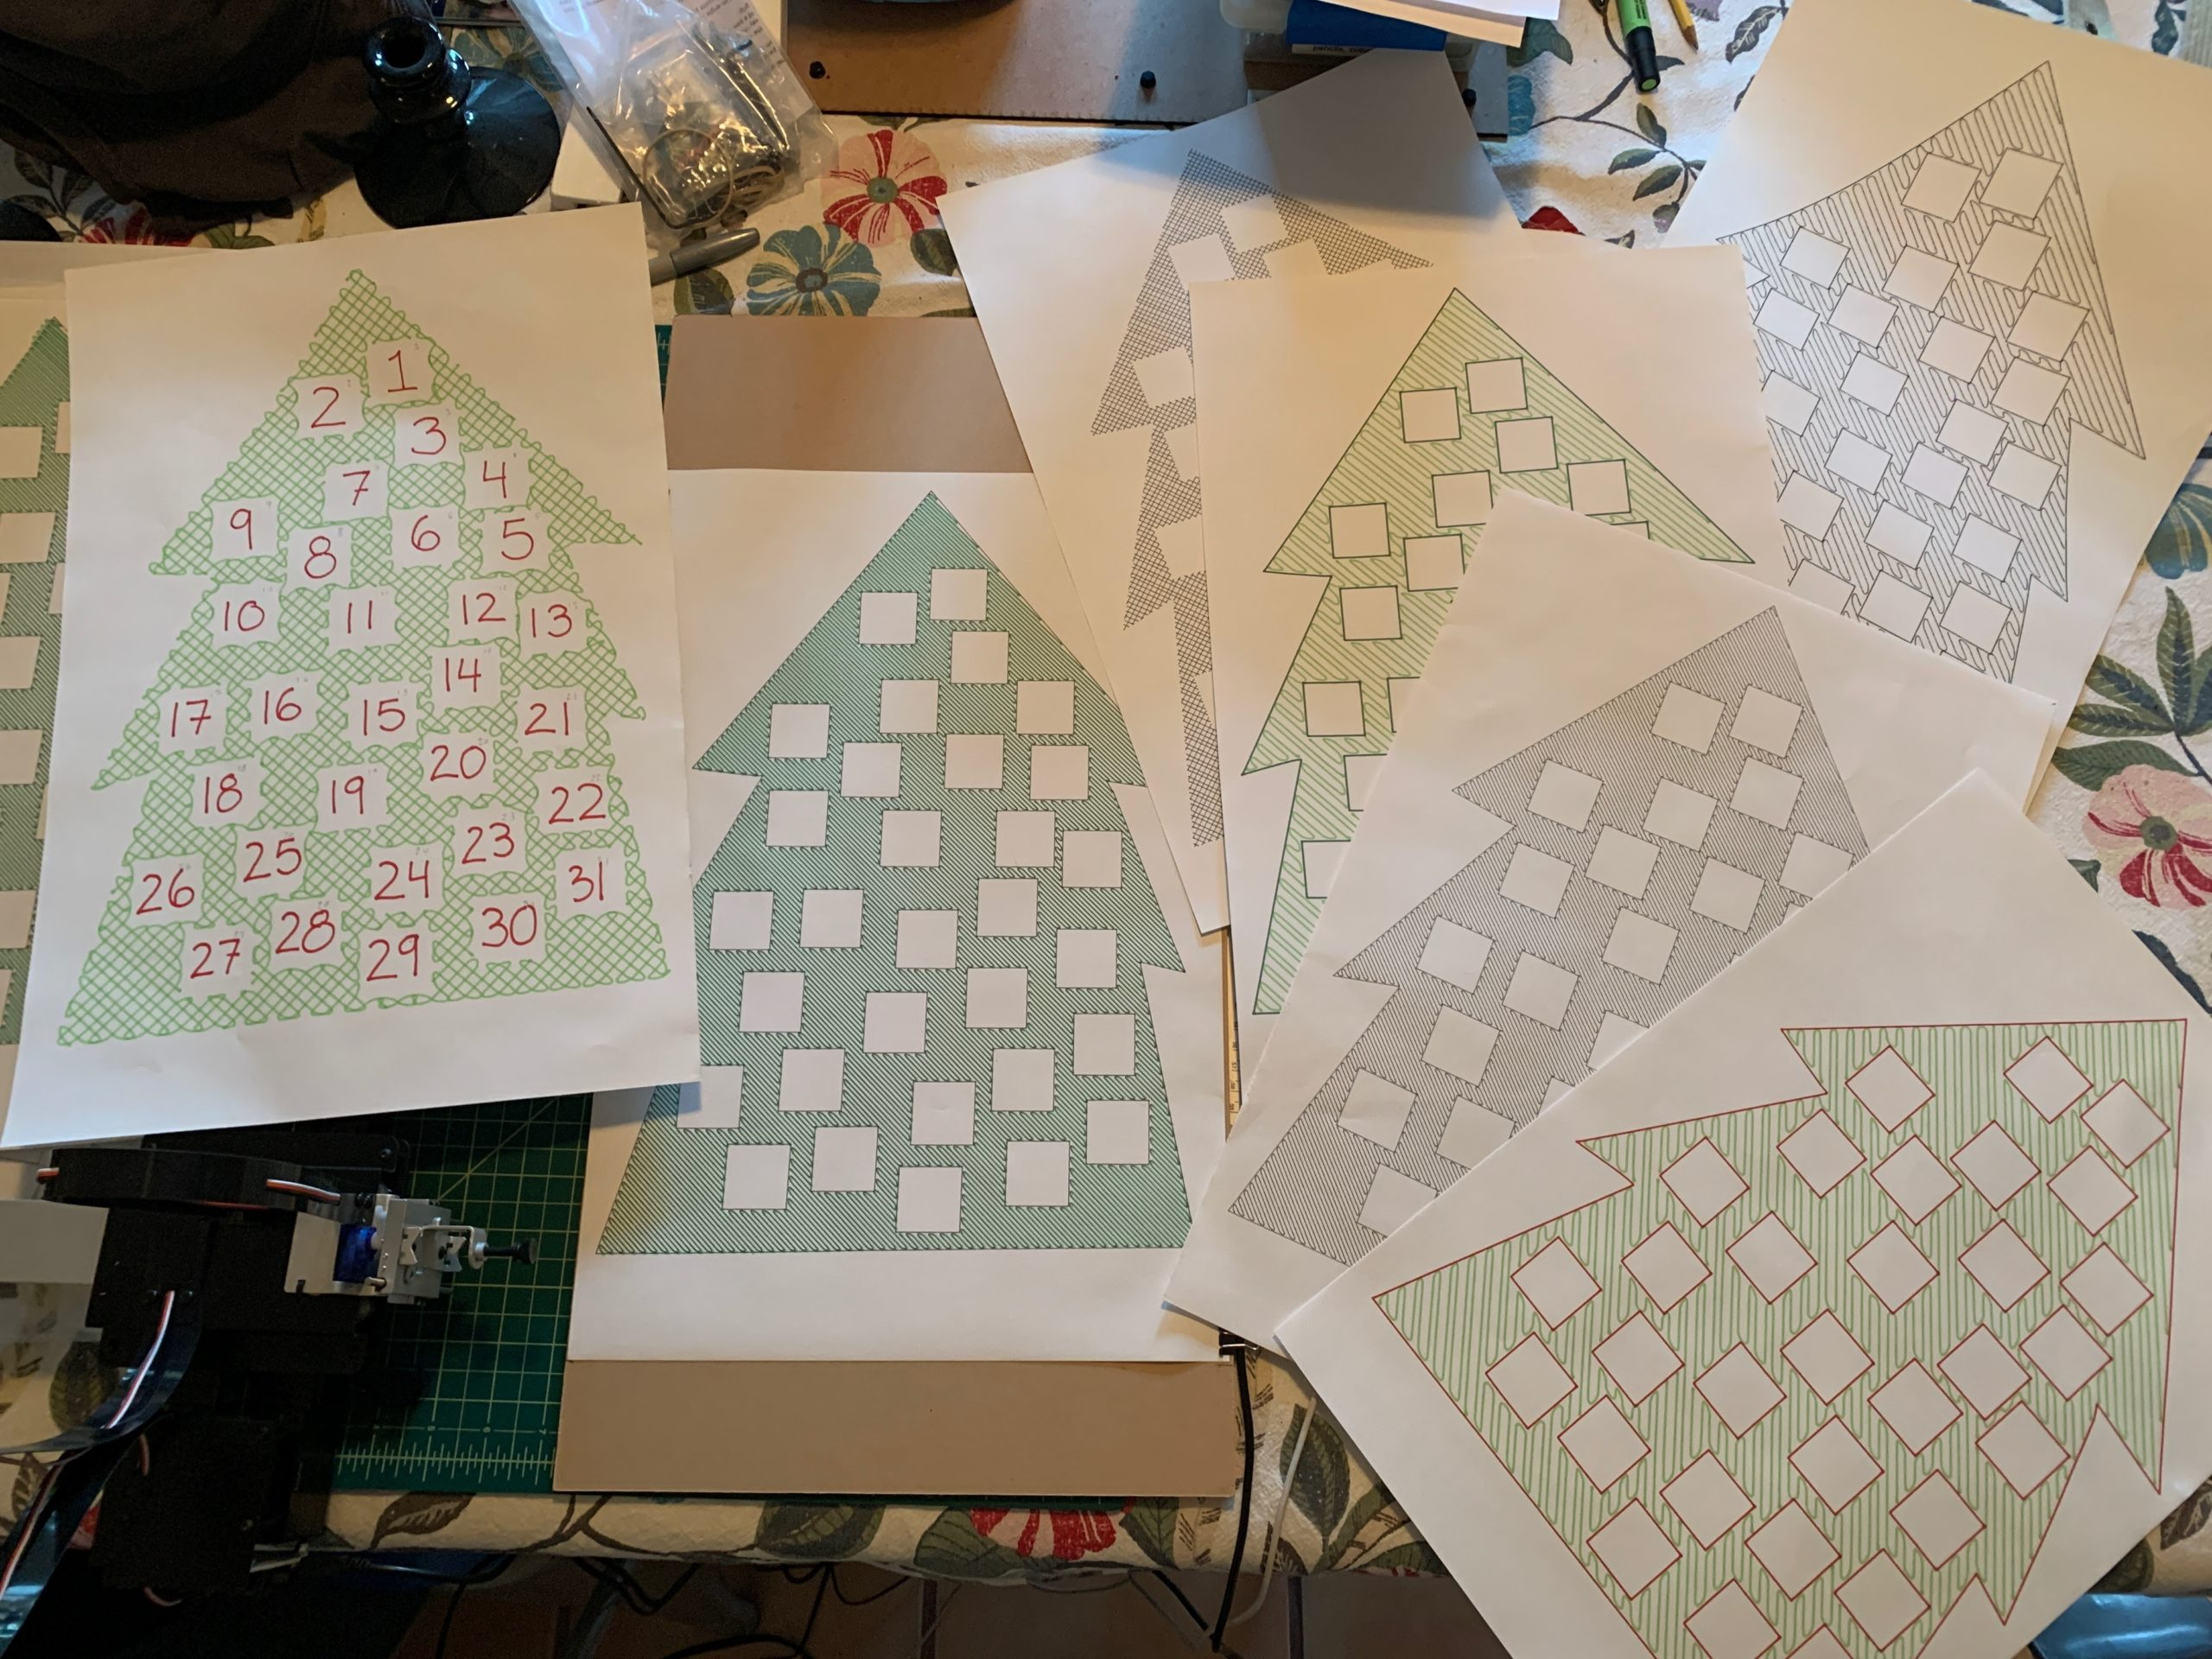 a collection of cartoon like fir trees with boxes cut out of them